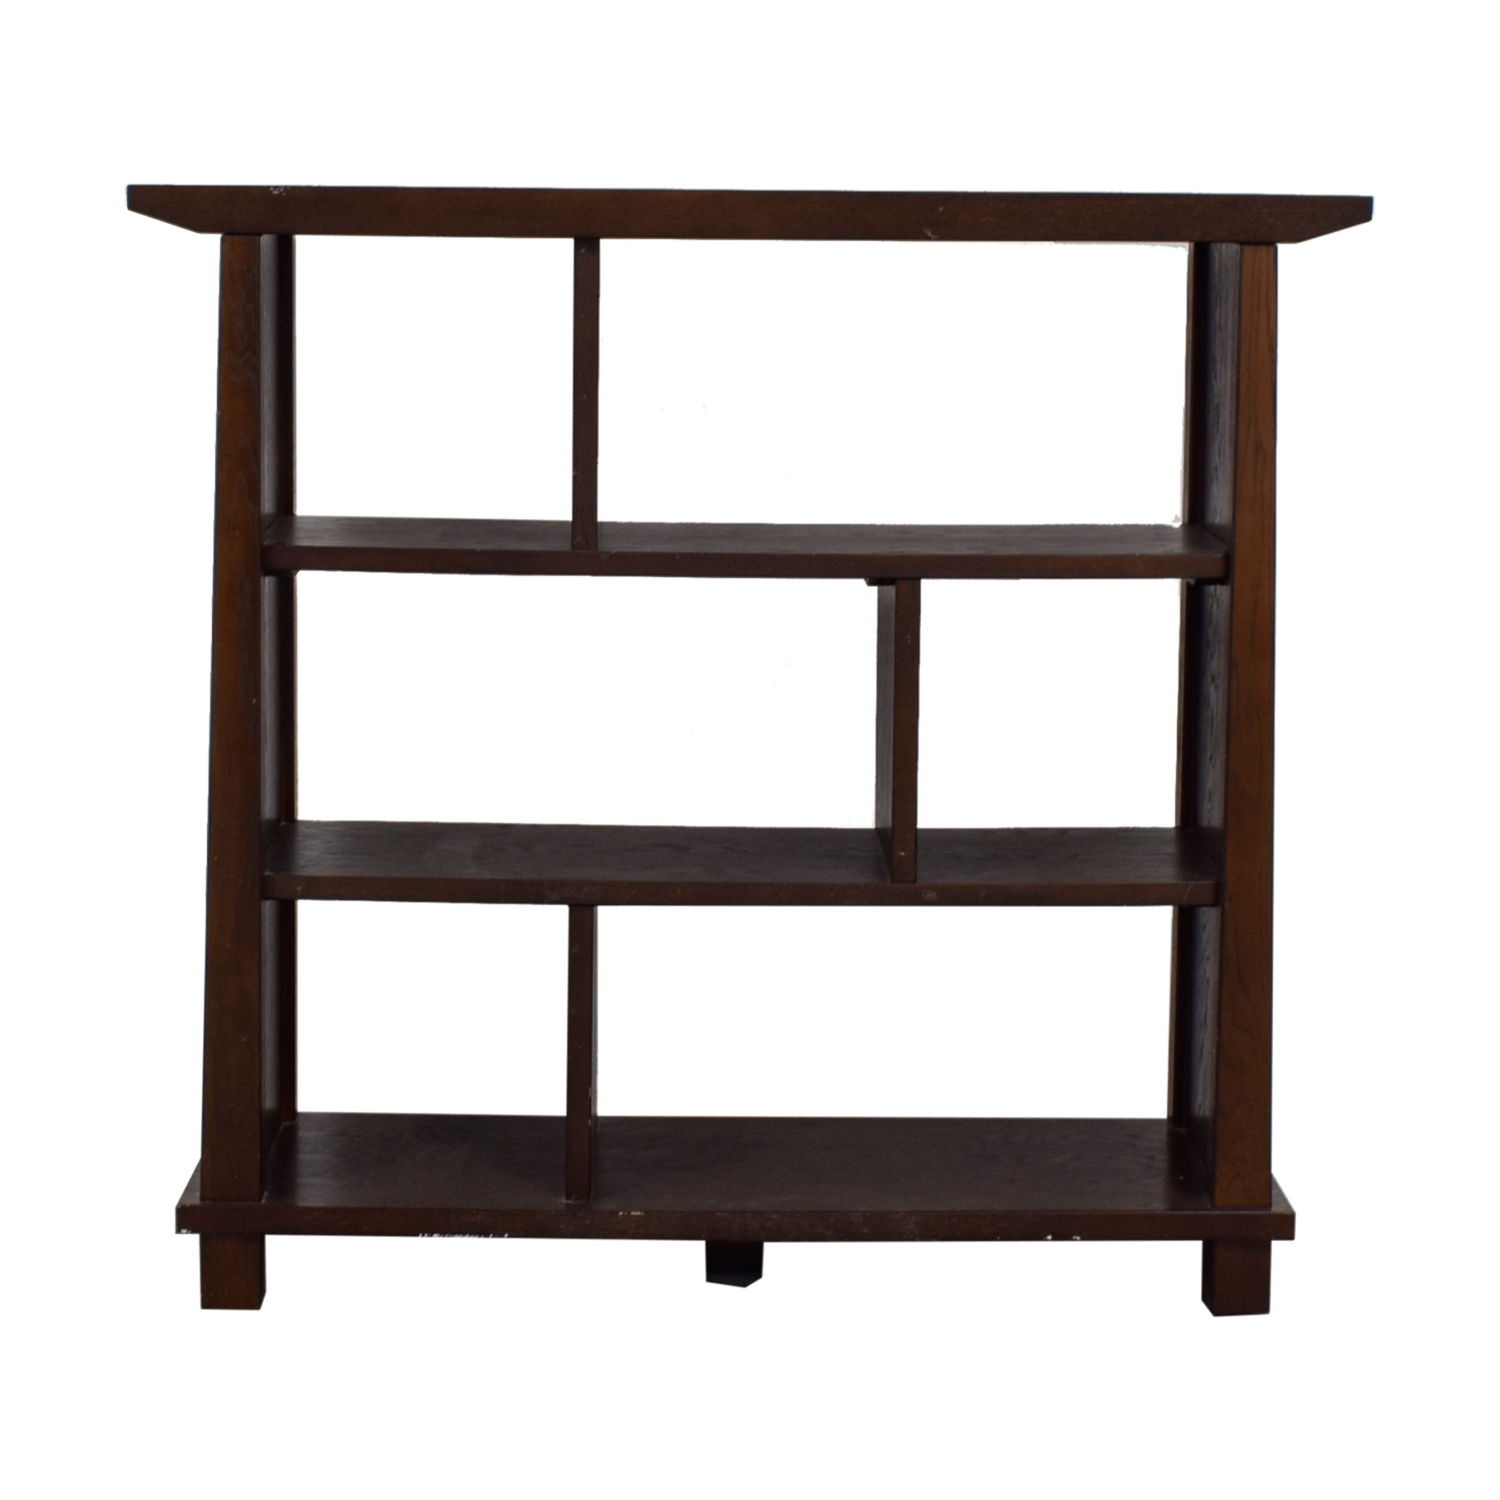 Crate & Barrel Crate & Barrel Bungalow Collection Wood Bookcase on sale